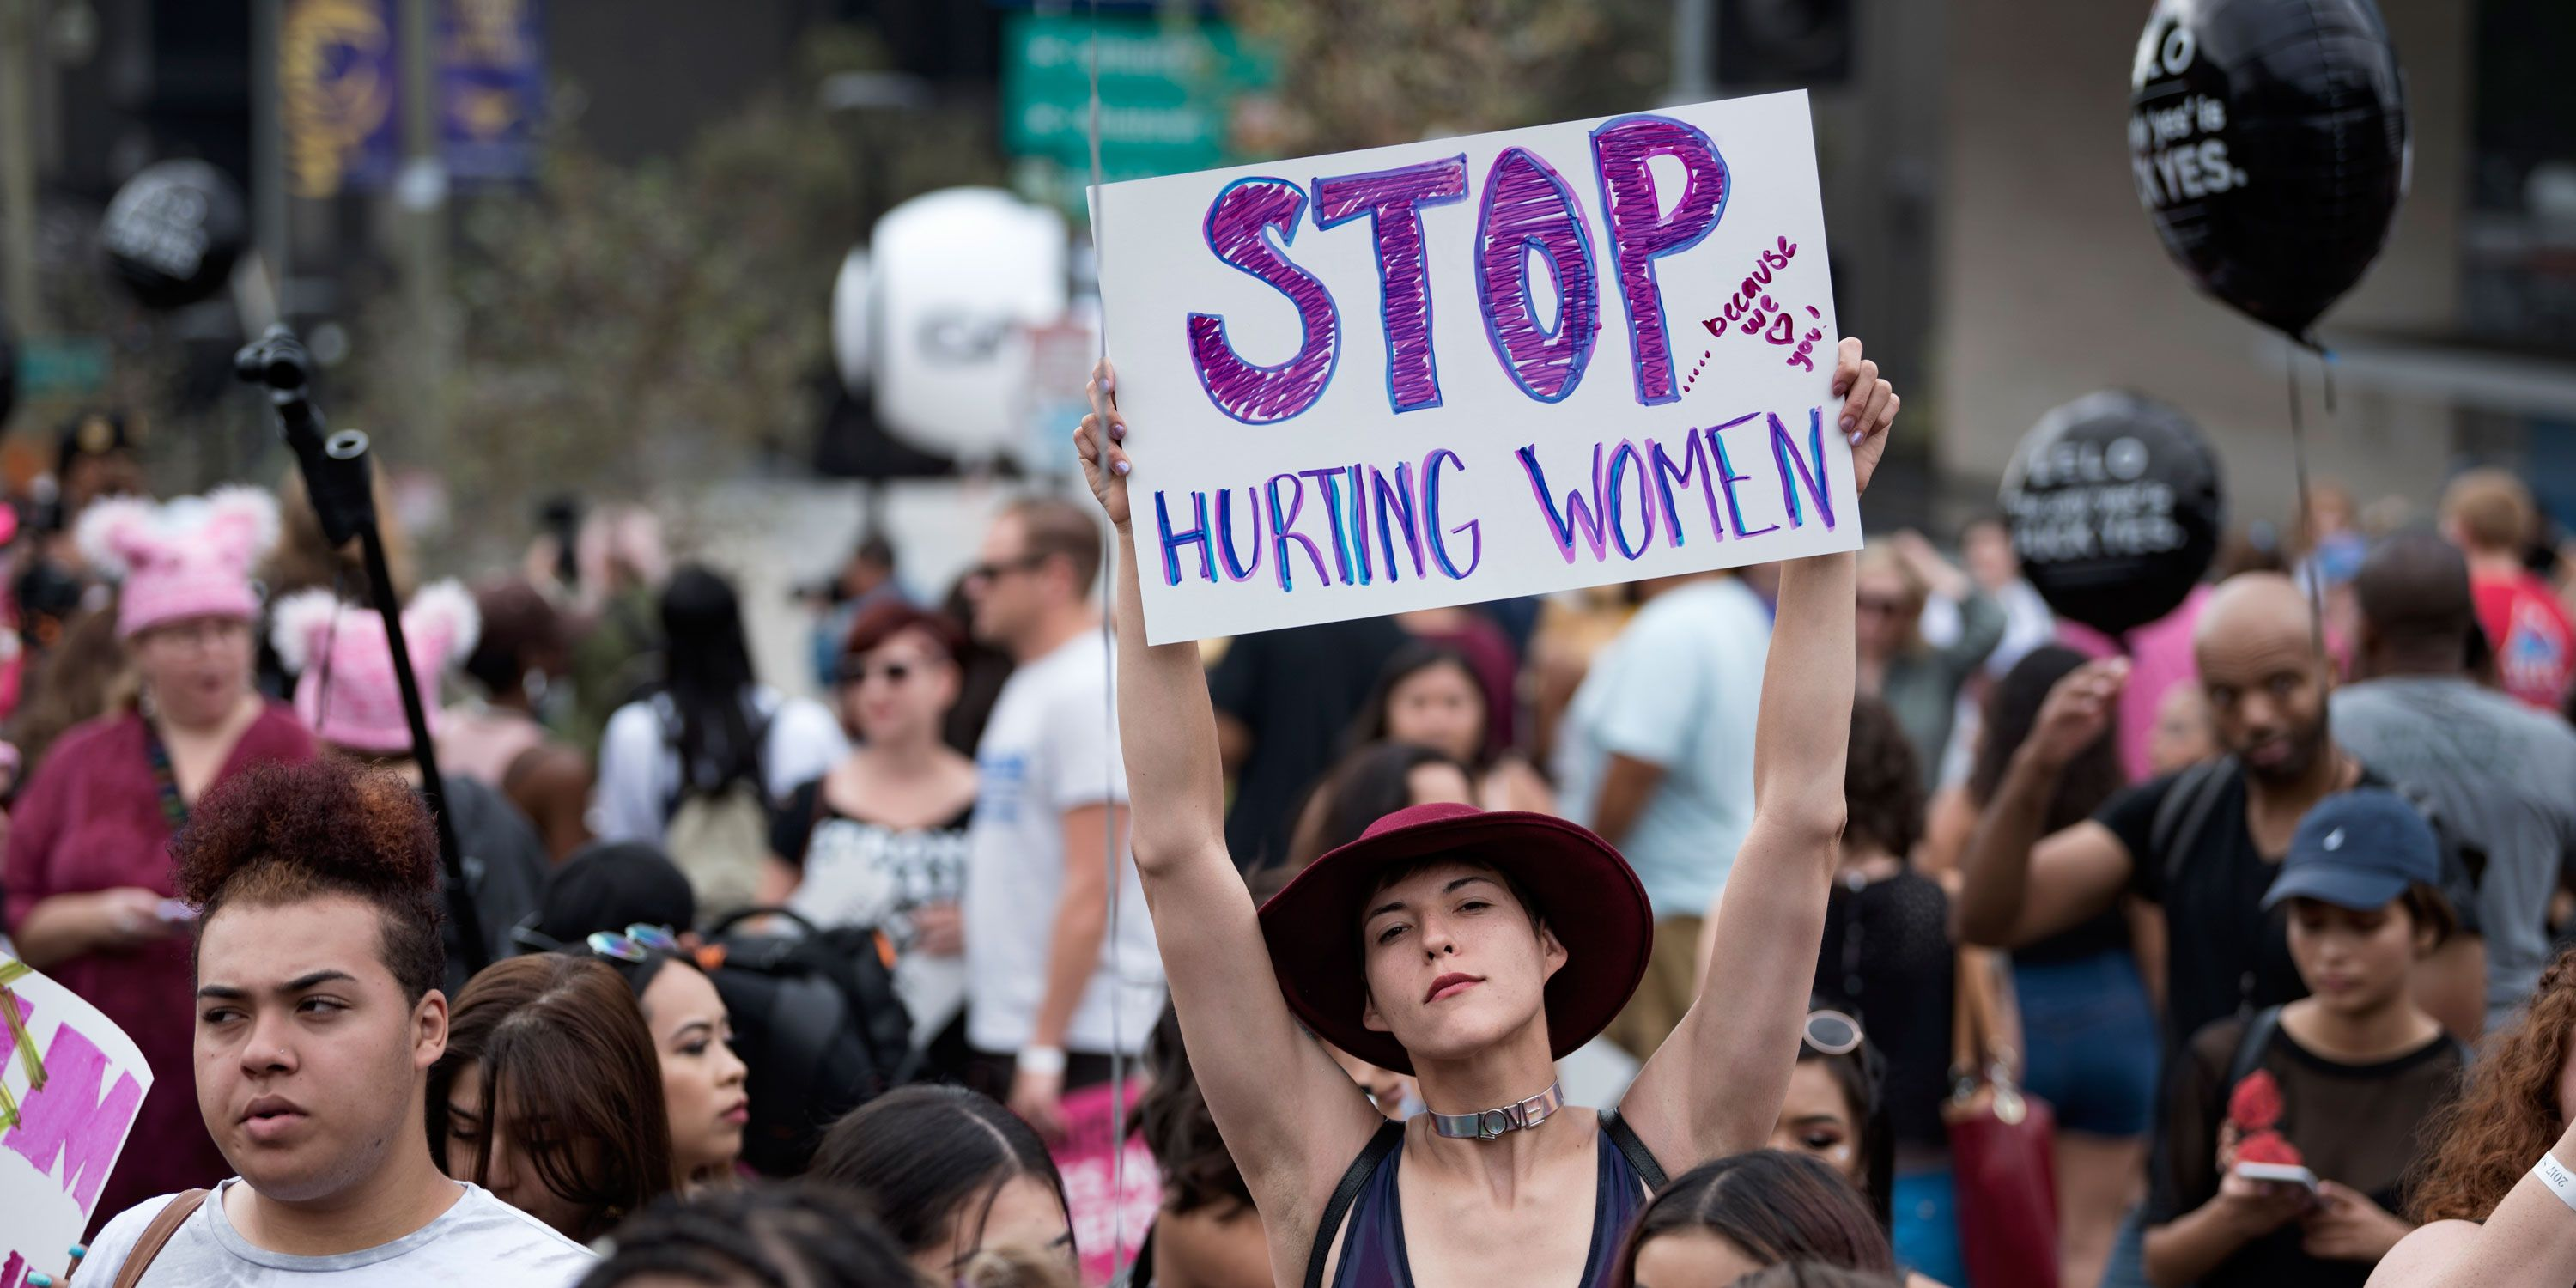 Participants in the 3rd Annual Amber Rose SlutWalk in Los Angeles, California. October 1, 2017